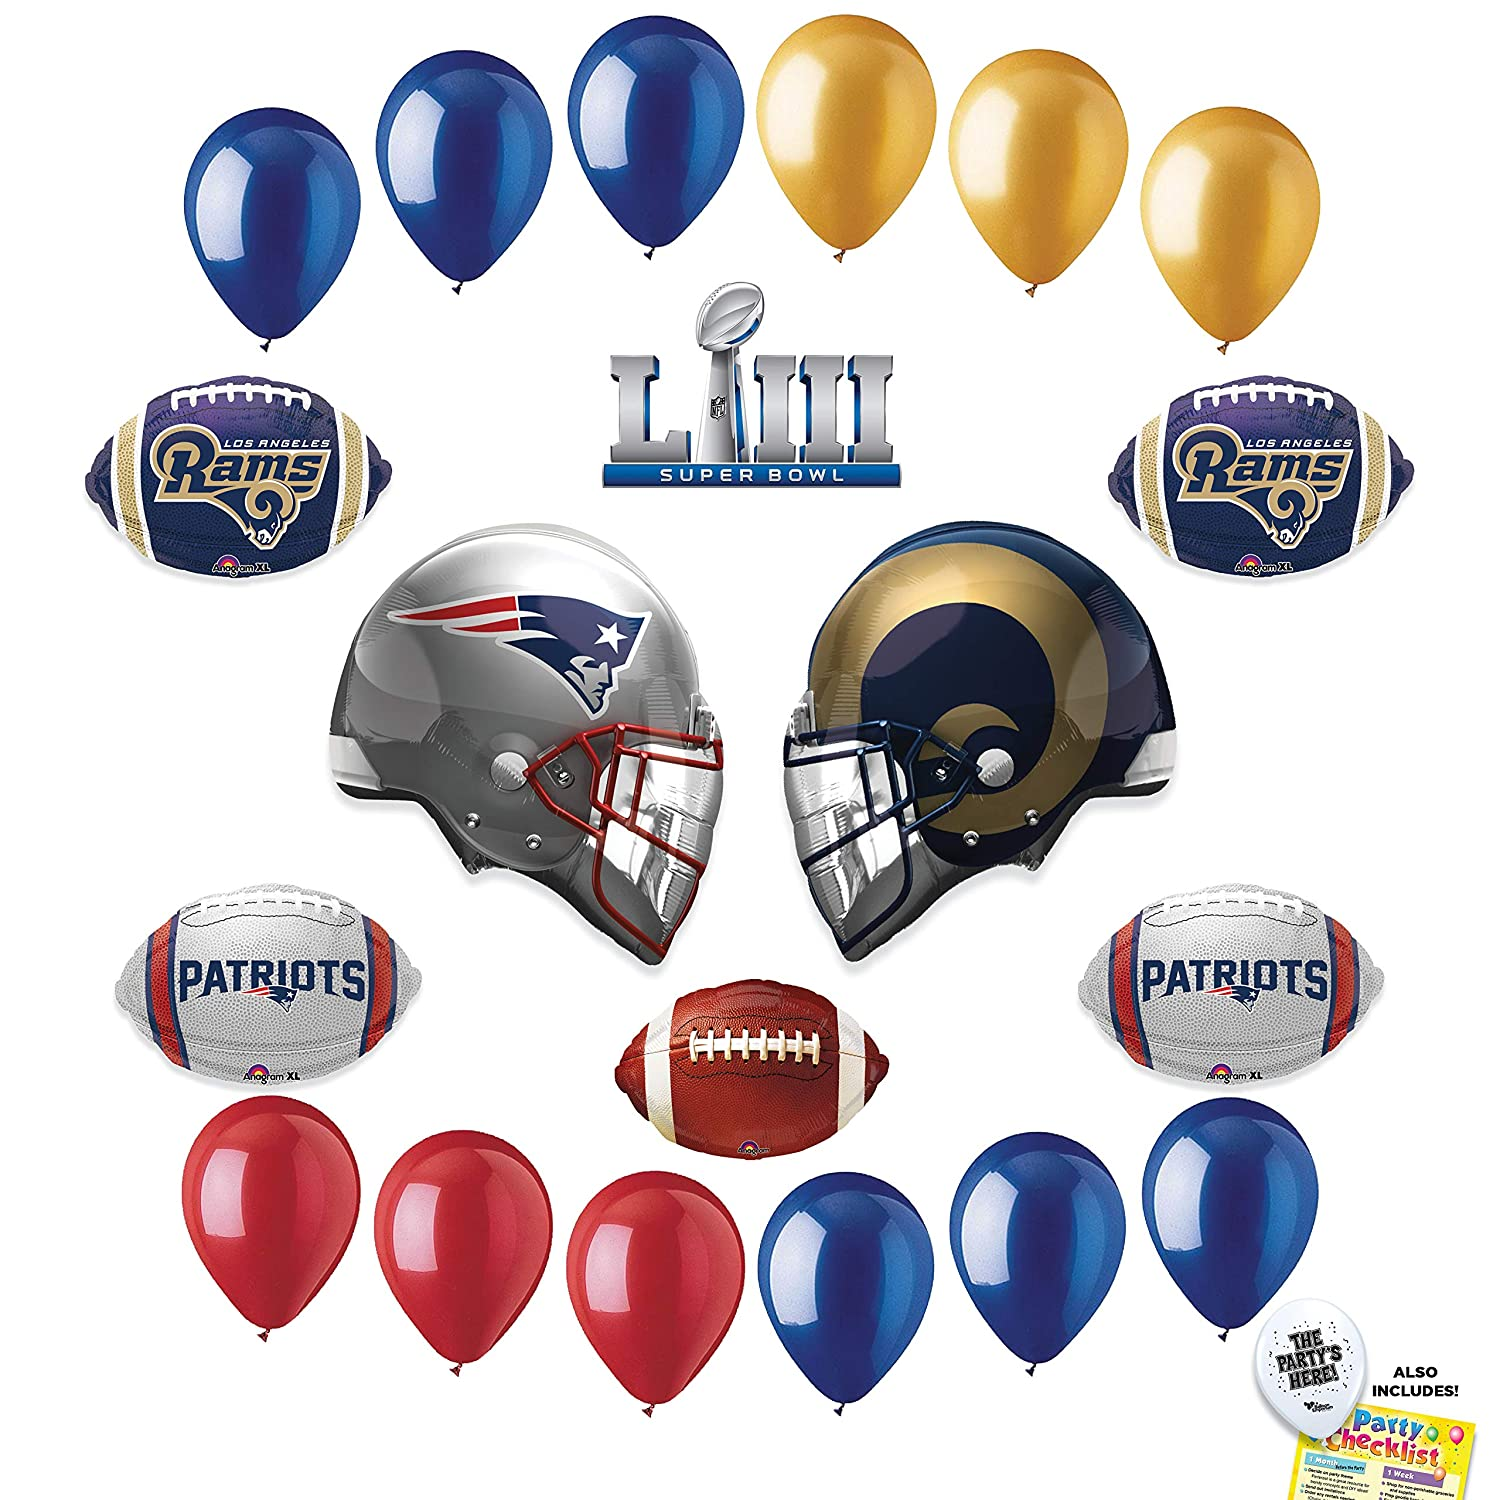 395464a9494af8 Amazon.com: SUPER BOWL 53 DUEL - Los Angeles Rams vs New England Patriots  Football NFL Sports Team HEAD TO HEAD Party Supplies Decorations Balloon Kit  ...